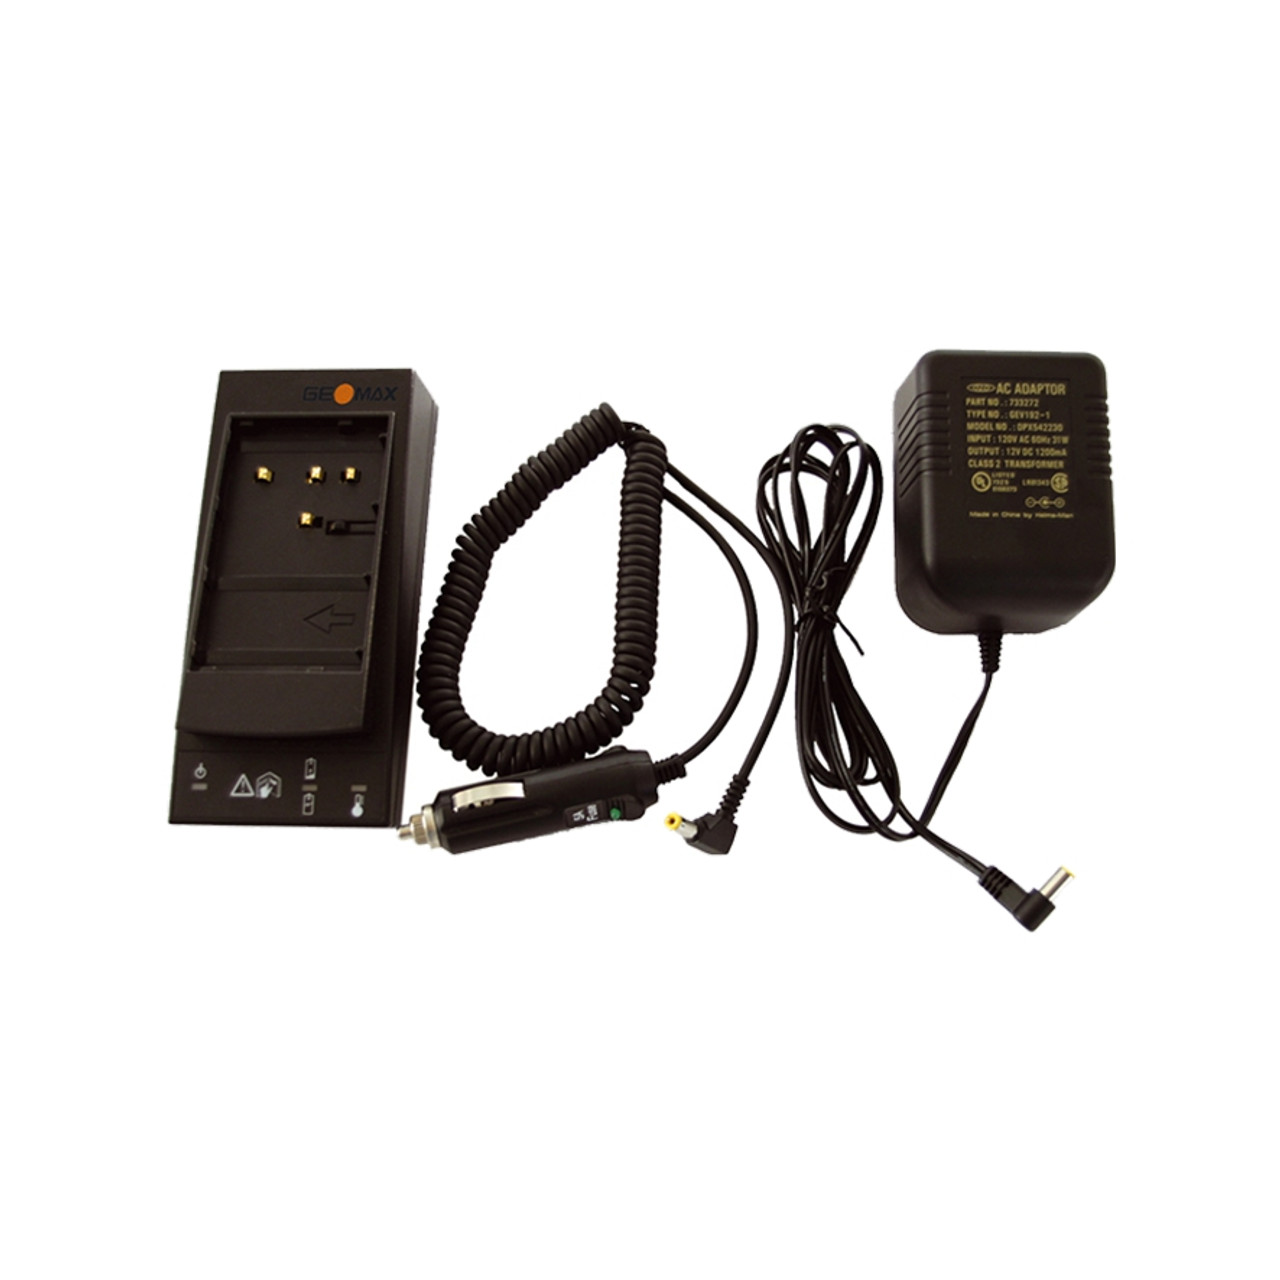 ZCH201 Battery Charger for ZBA201/400 (766872)